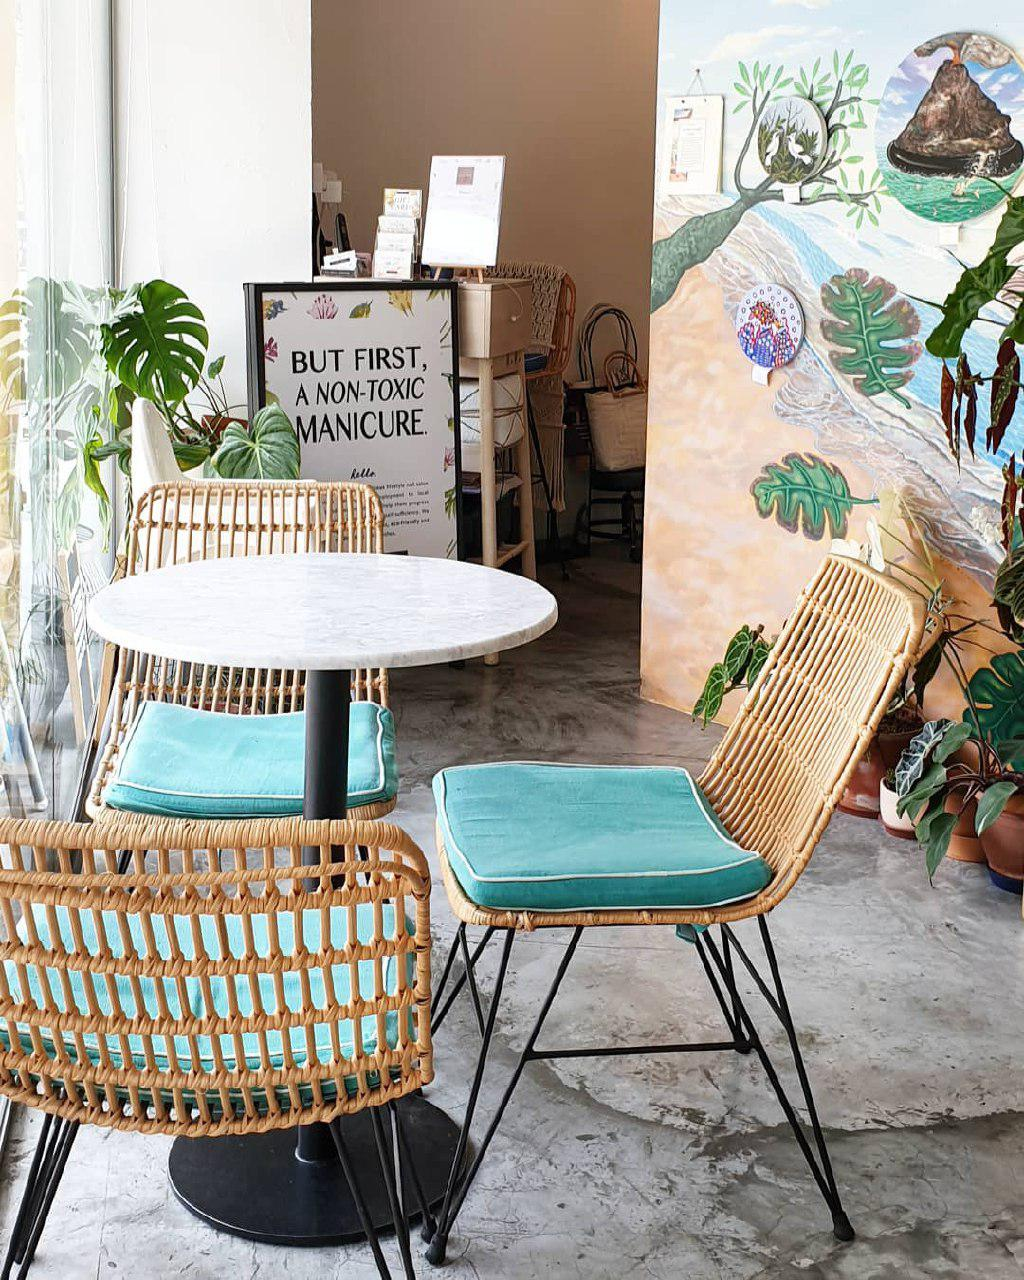 Zero-Waste Stores in Singapore - The Social Space